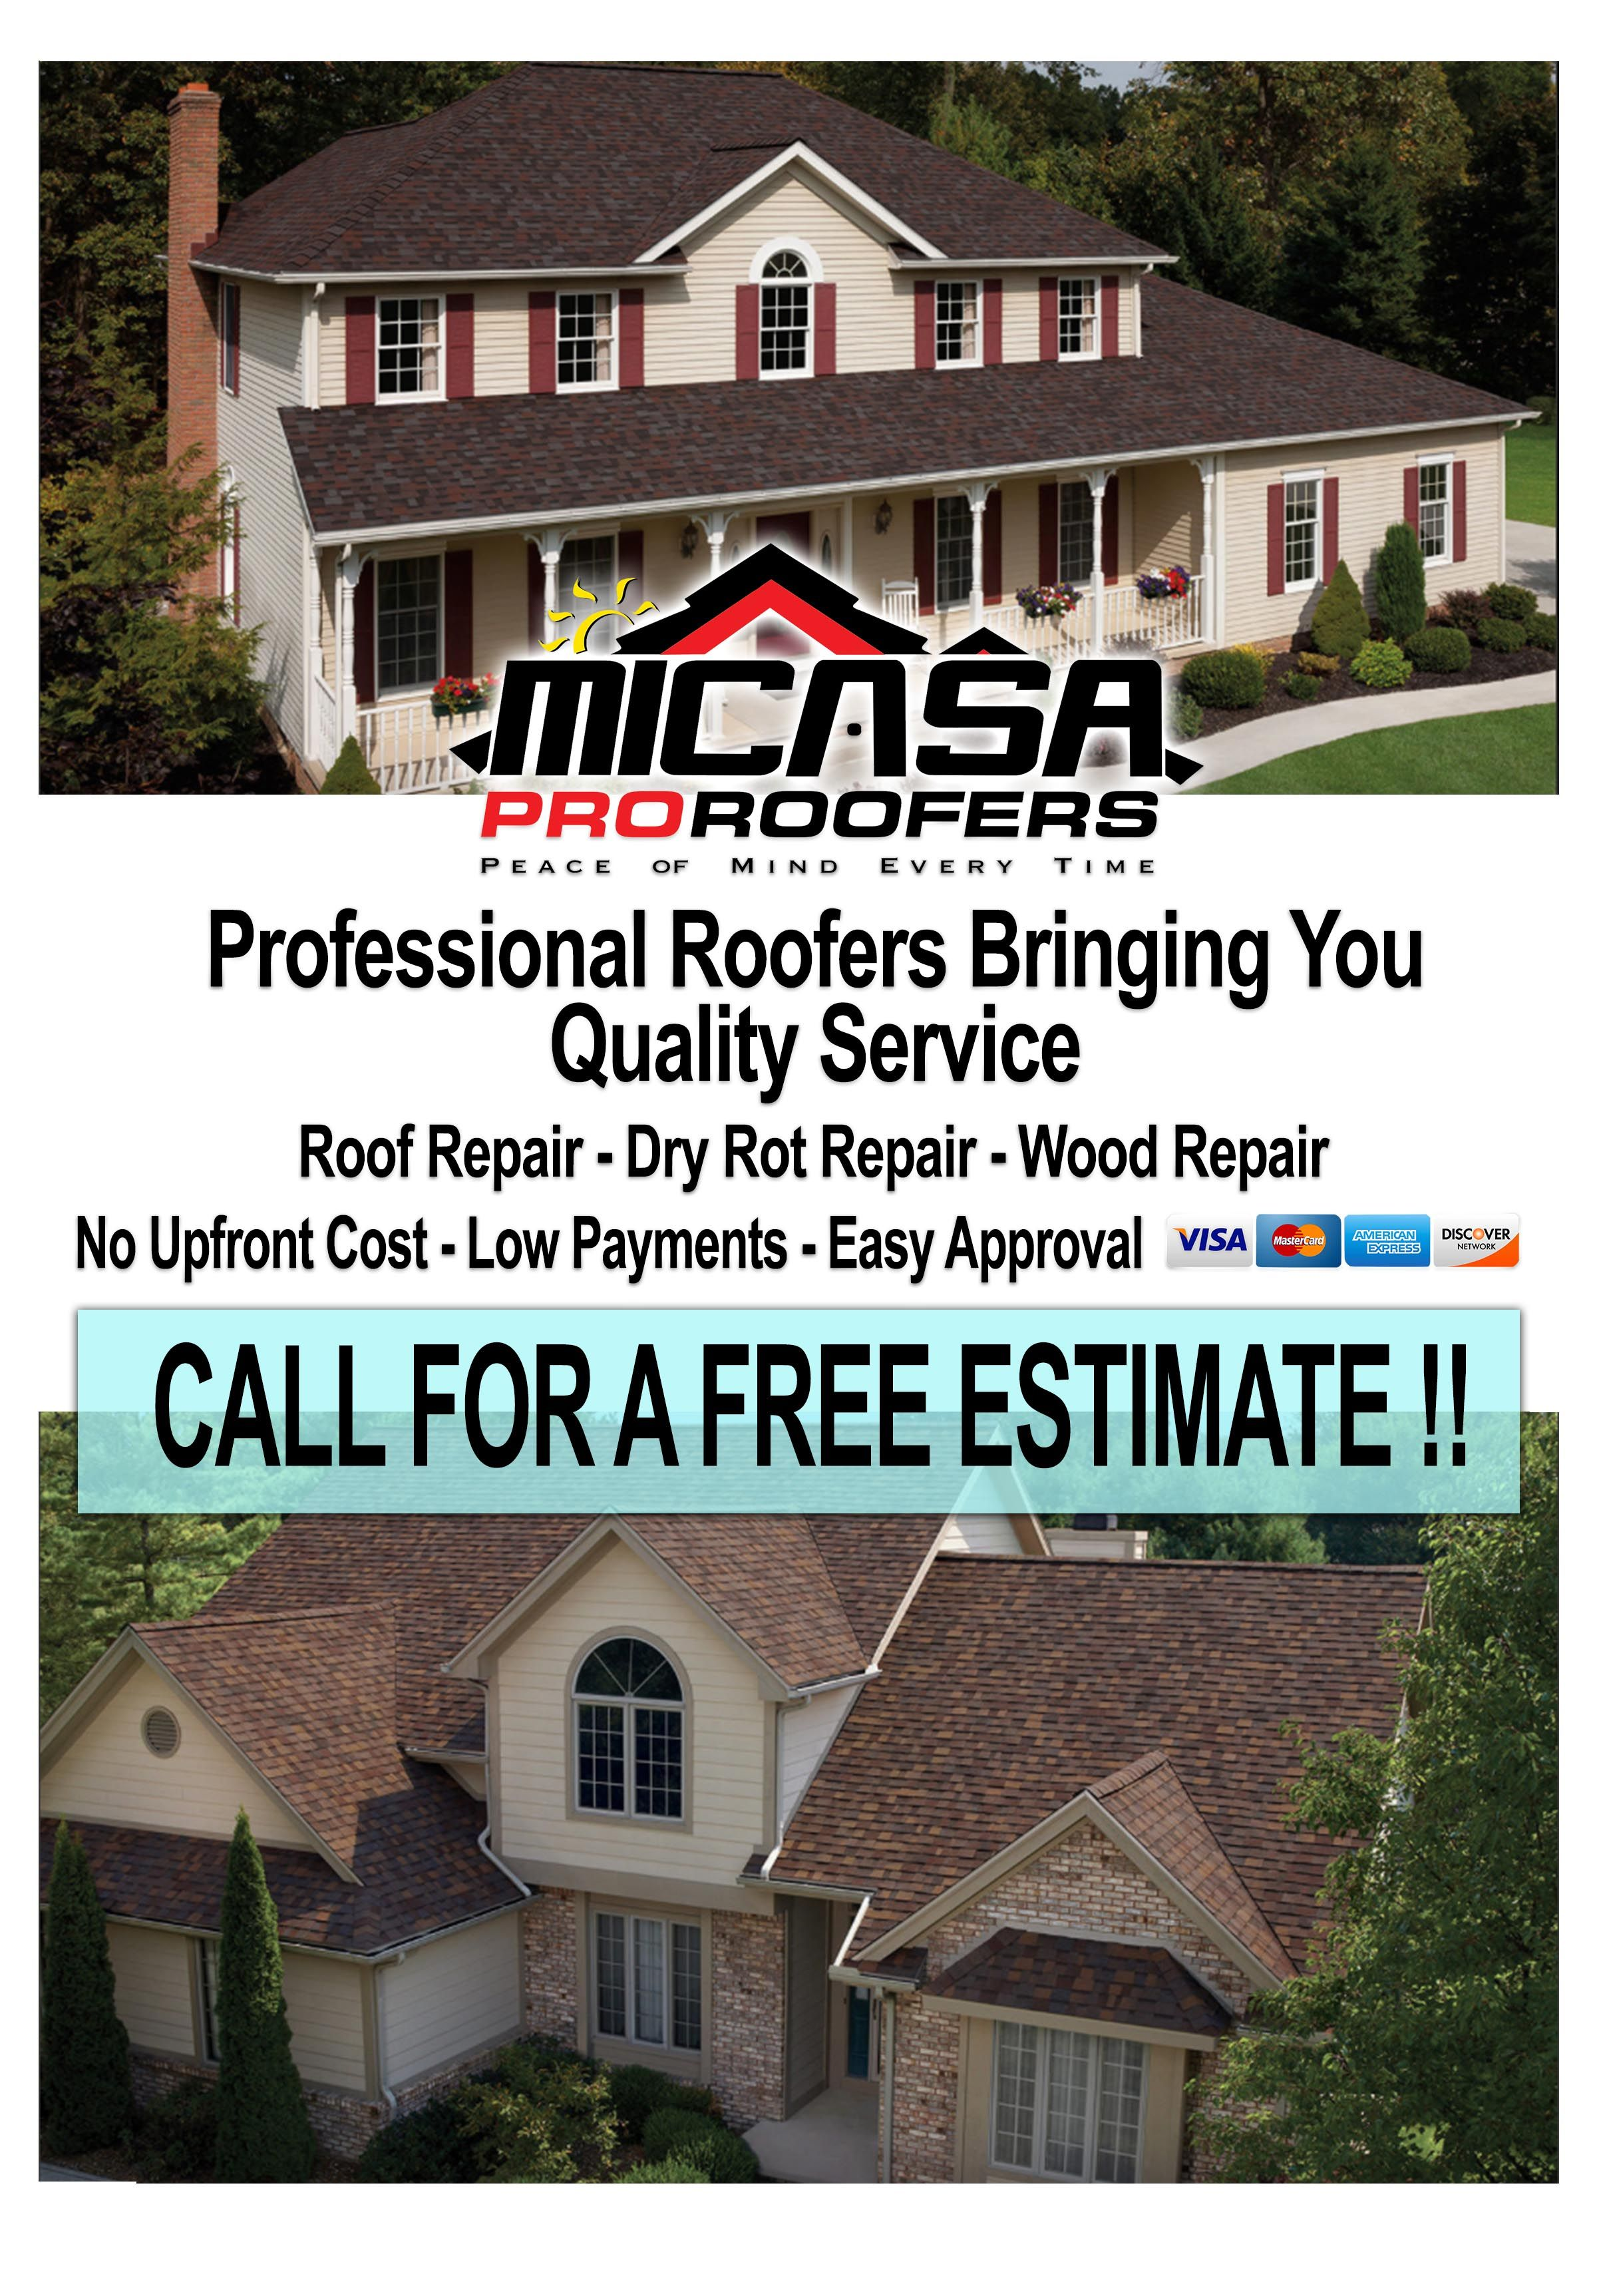 Pin By Micasa Roofing On Micasa Pro Roofers Upland Ads Cool Roof Wood Repair Roofer